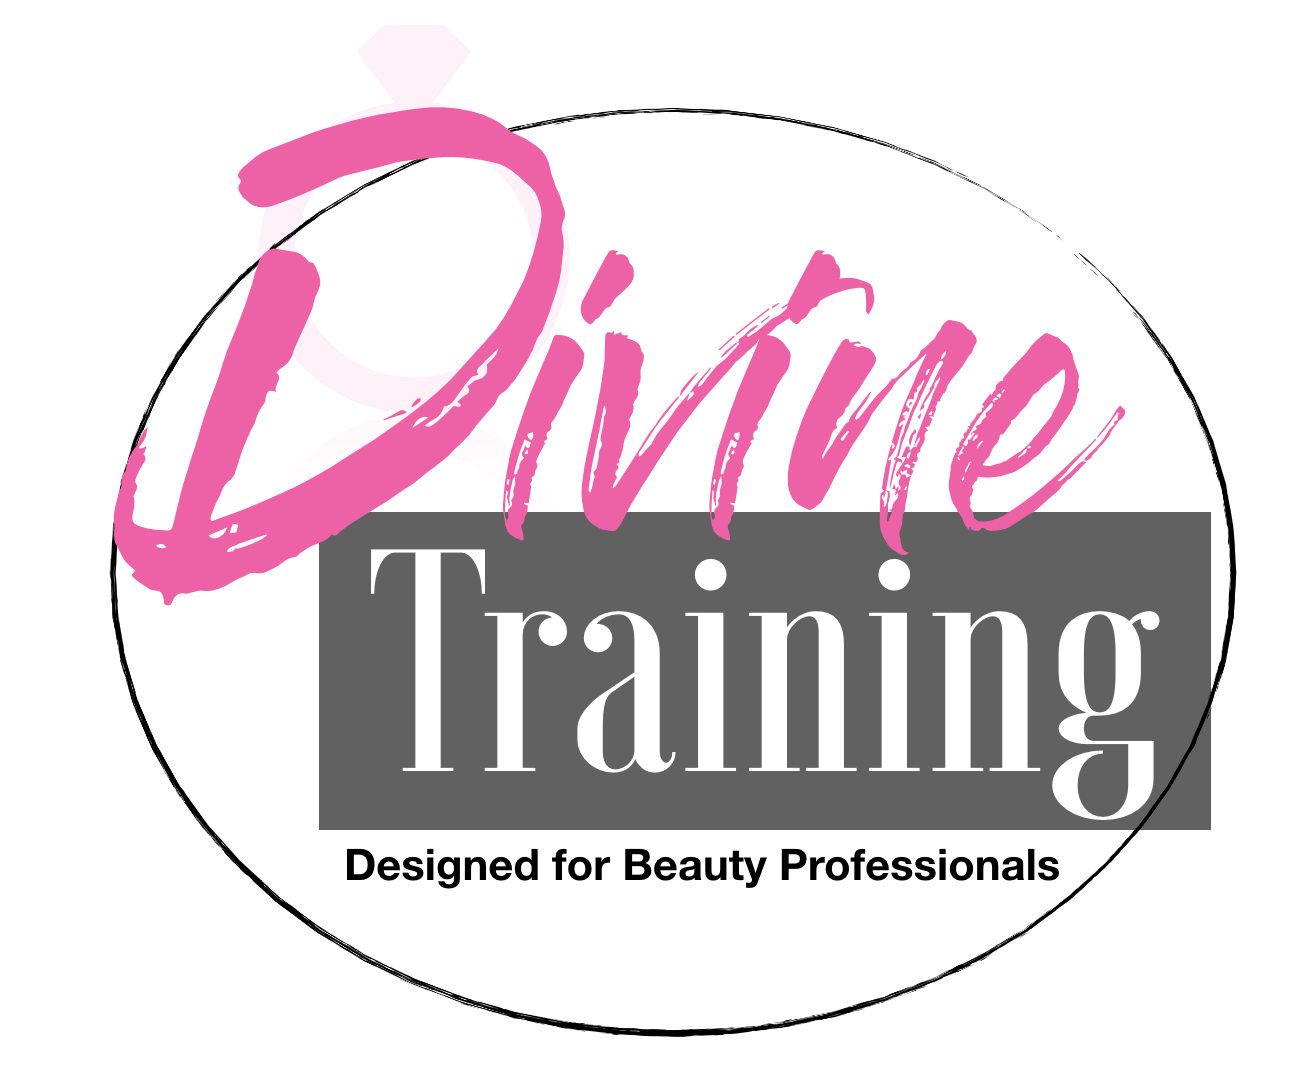 Wedding Professionals Business Sales & Marketing Training